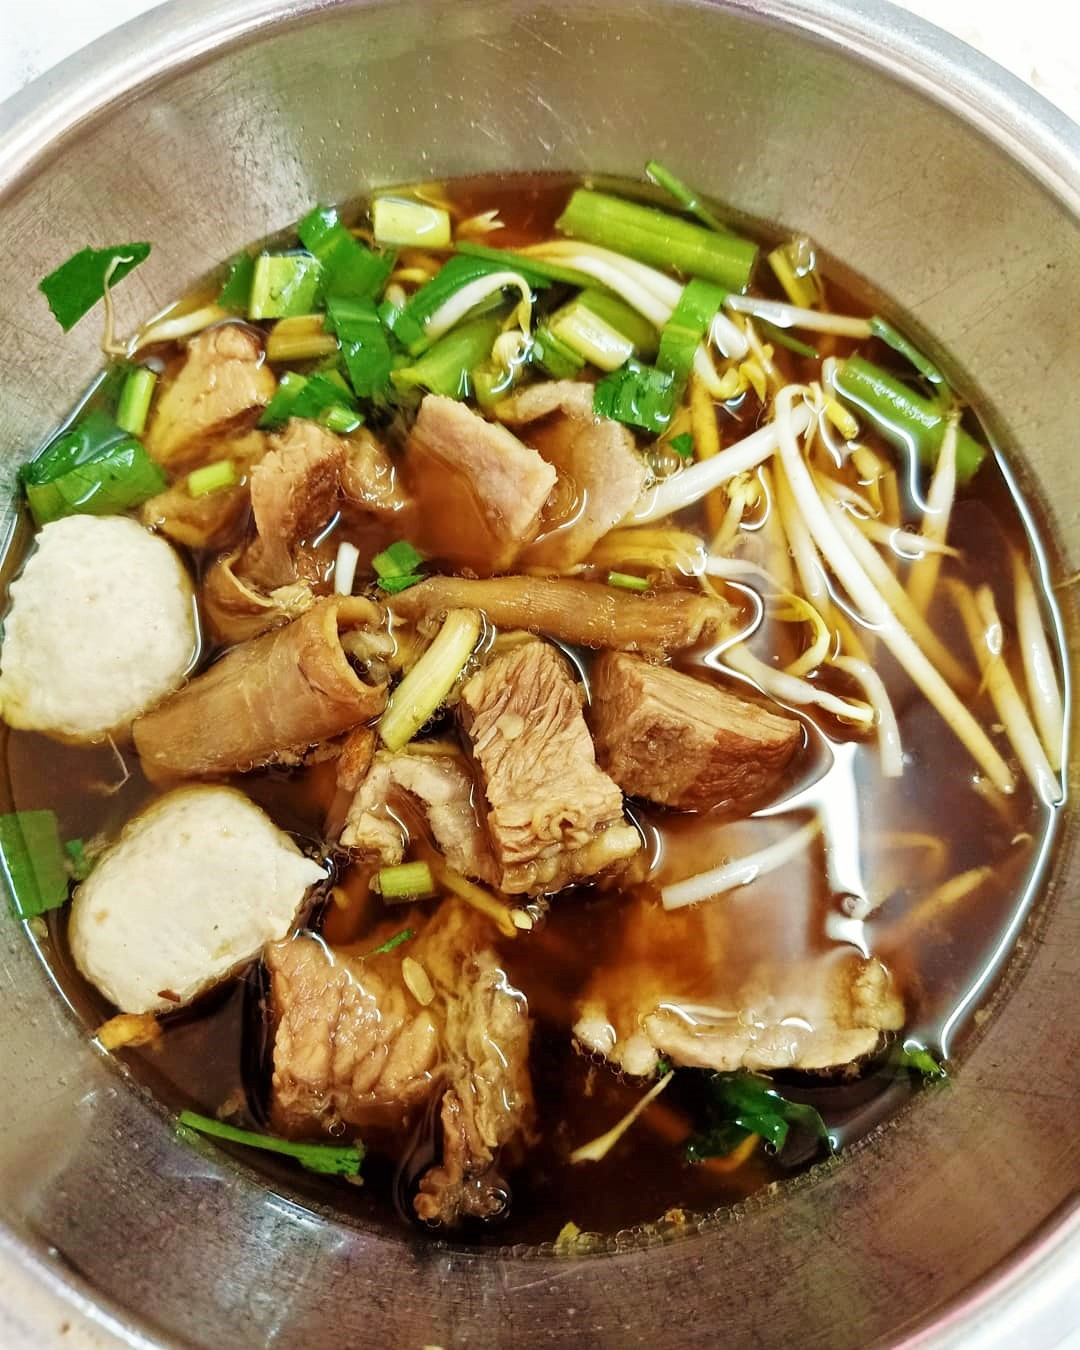 Beef balls, tendon, brisket, bean sprouts in a bowl of beef broth